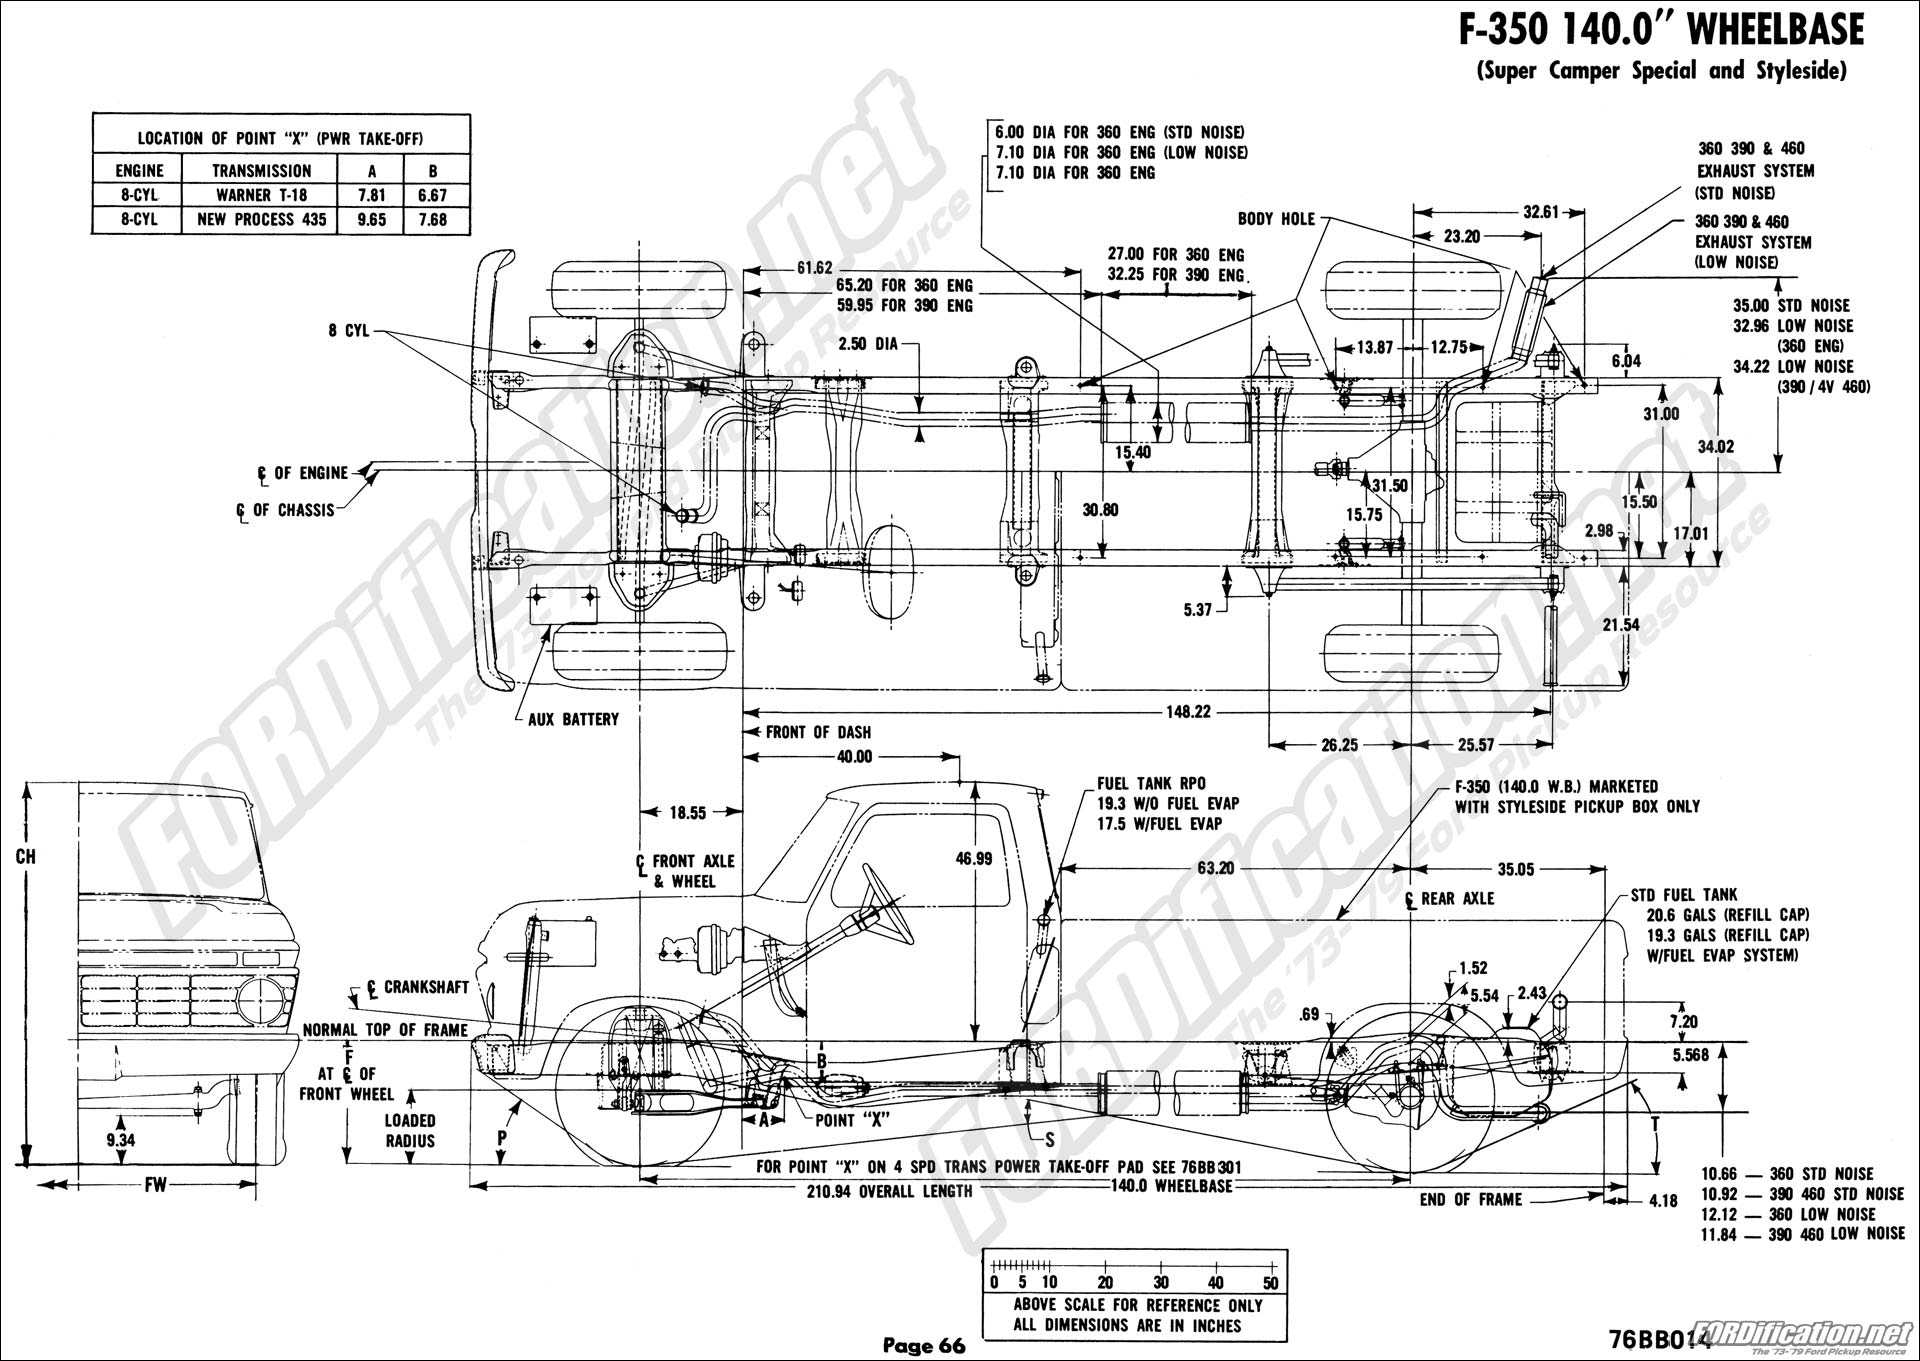 1986 ford f250 wiring diagram 1986 discover your wiring diagram ford f 150 rear leaf spring bushing 1217027 93 ford f250 cruise control